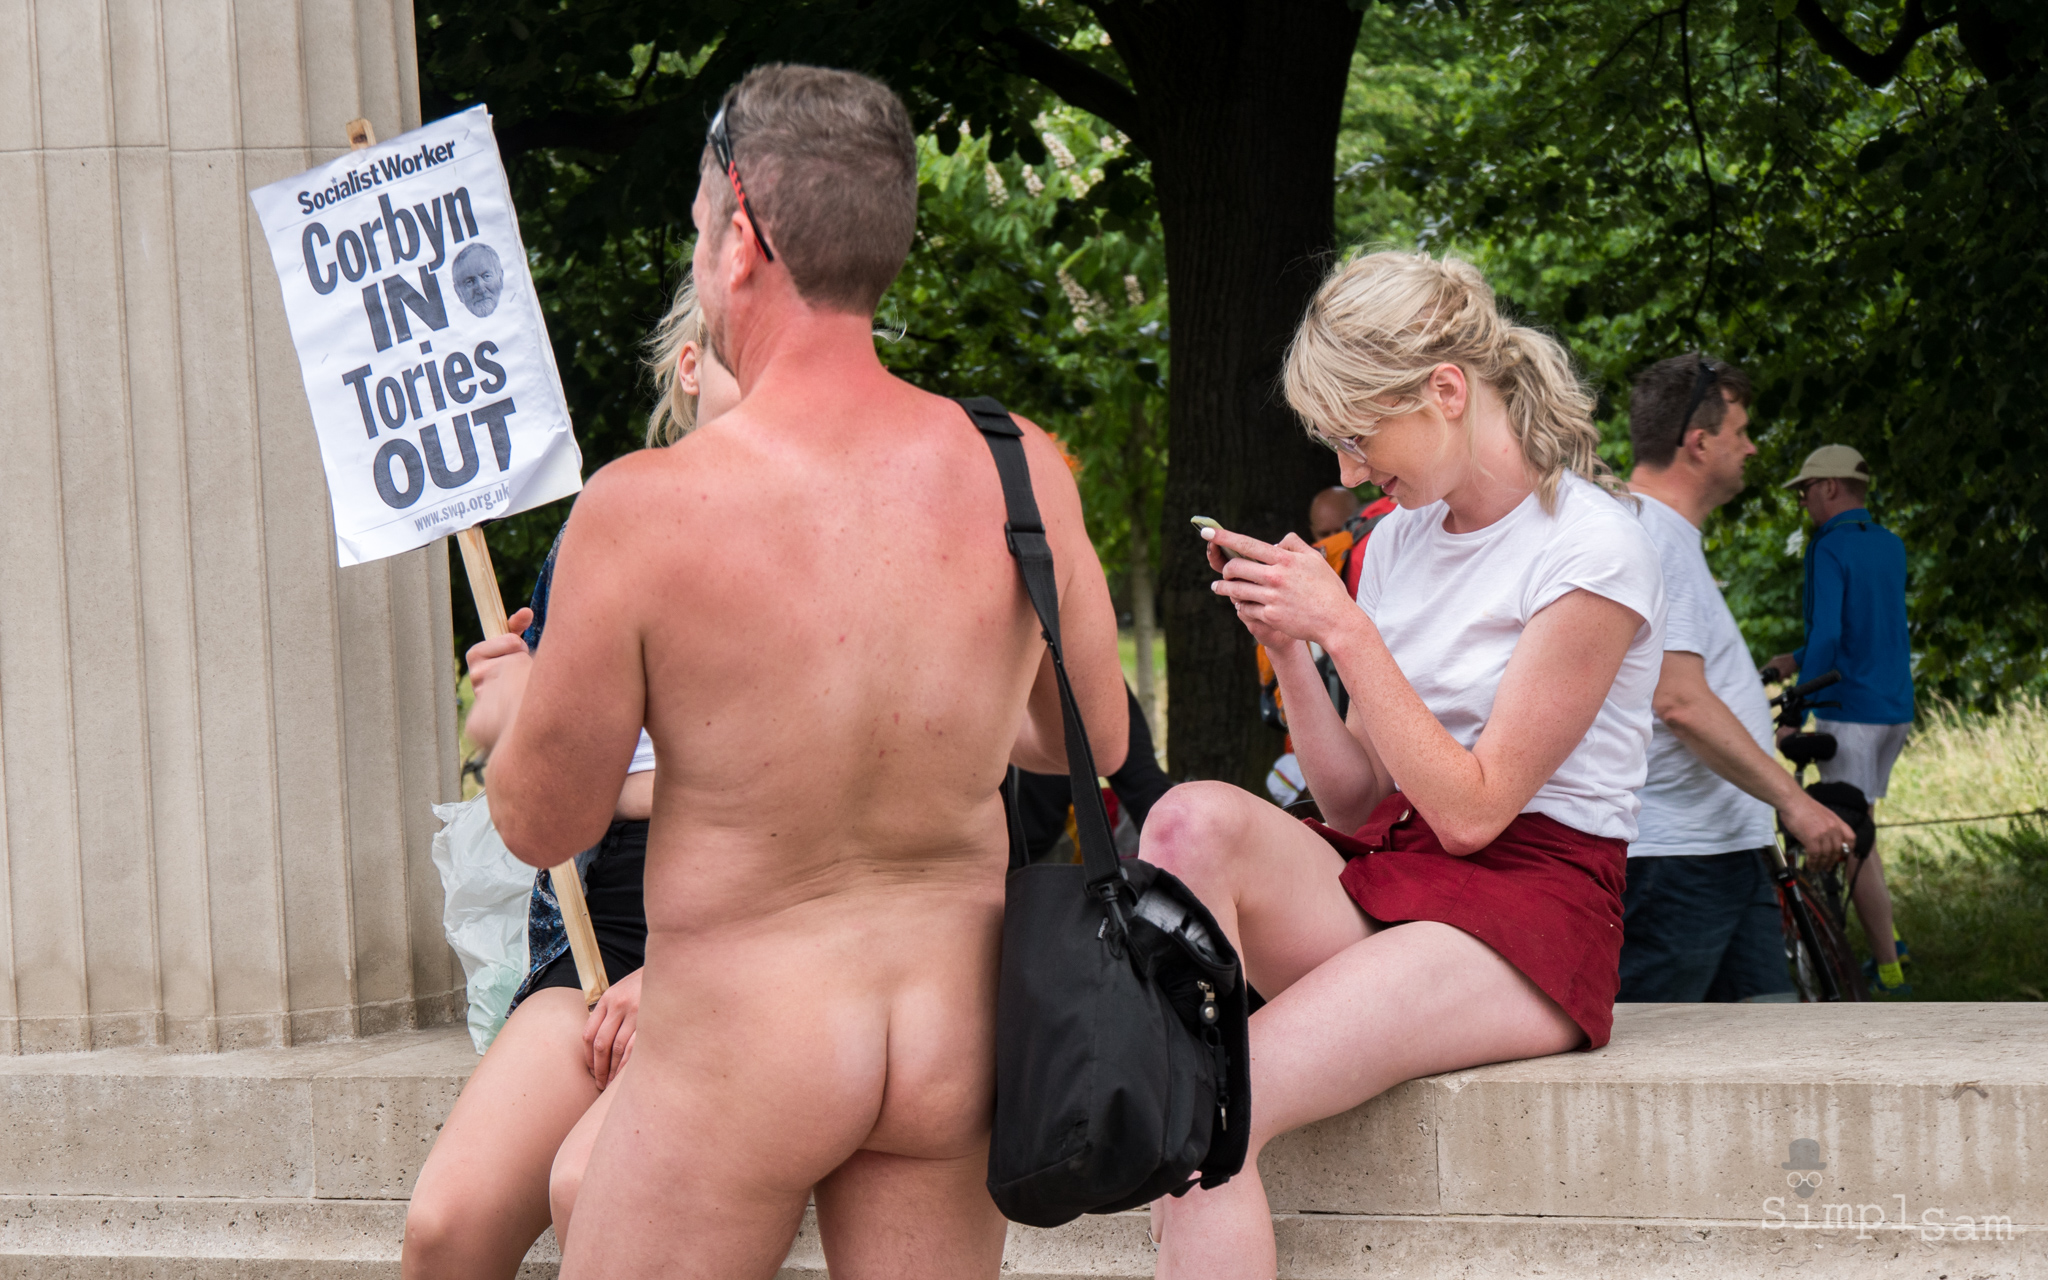 World Naked Bike Ride 2017 - Socialist Worker, Corbyn In / Tories Out